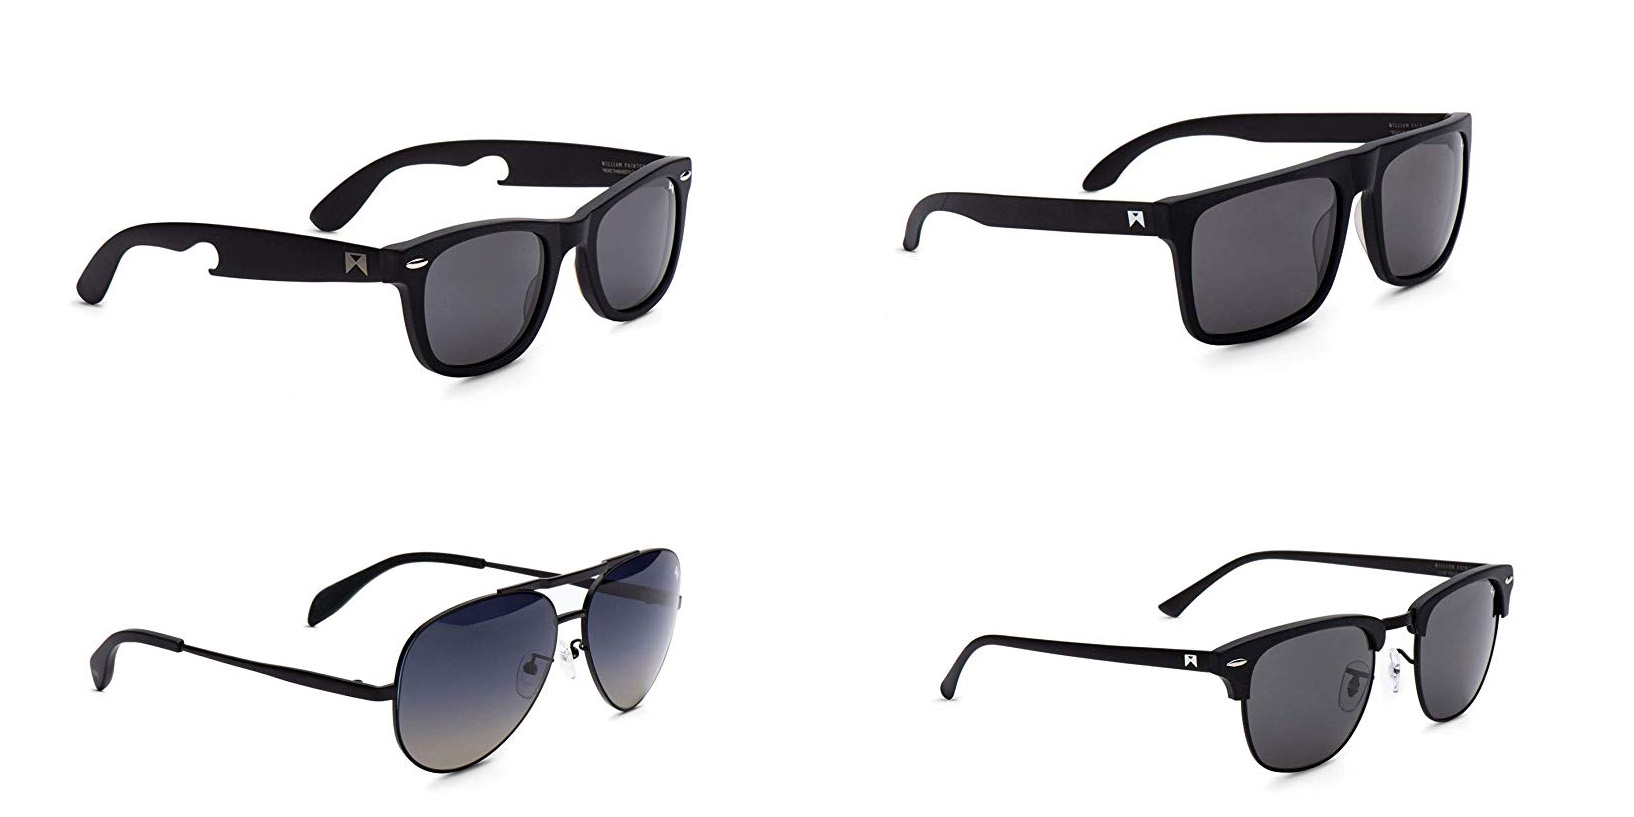 Update your spring sunglasses with Amazon's Gold Box feat. William Painter styles at up to 45% off